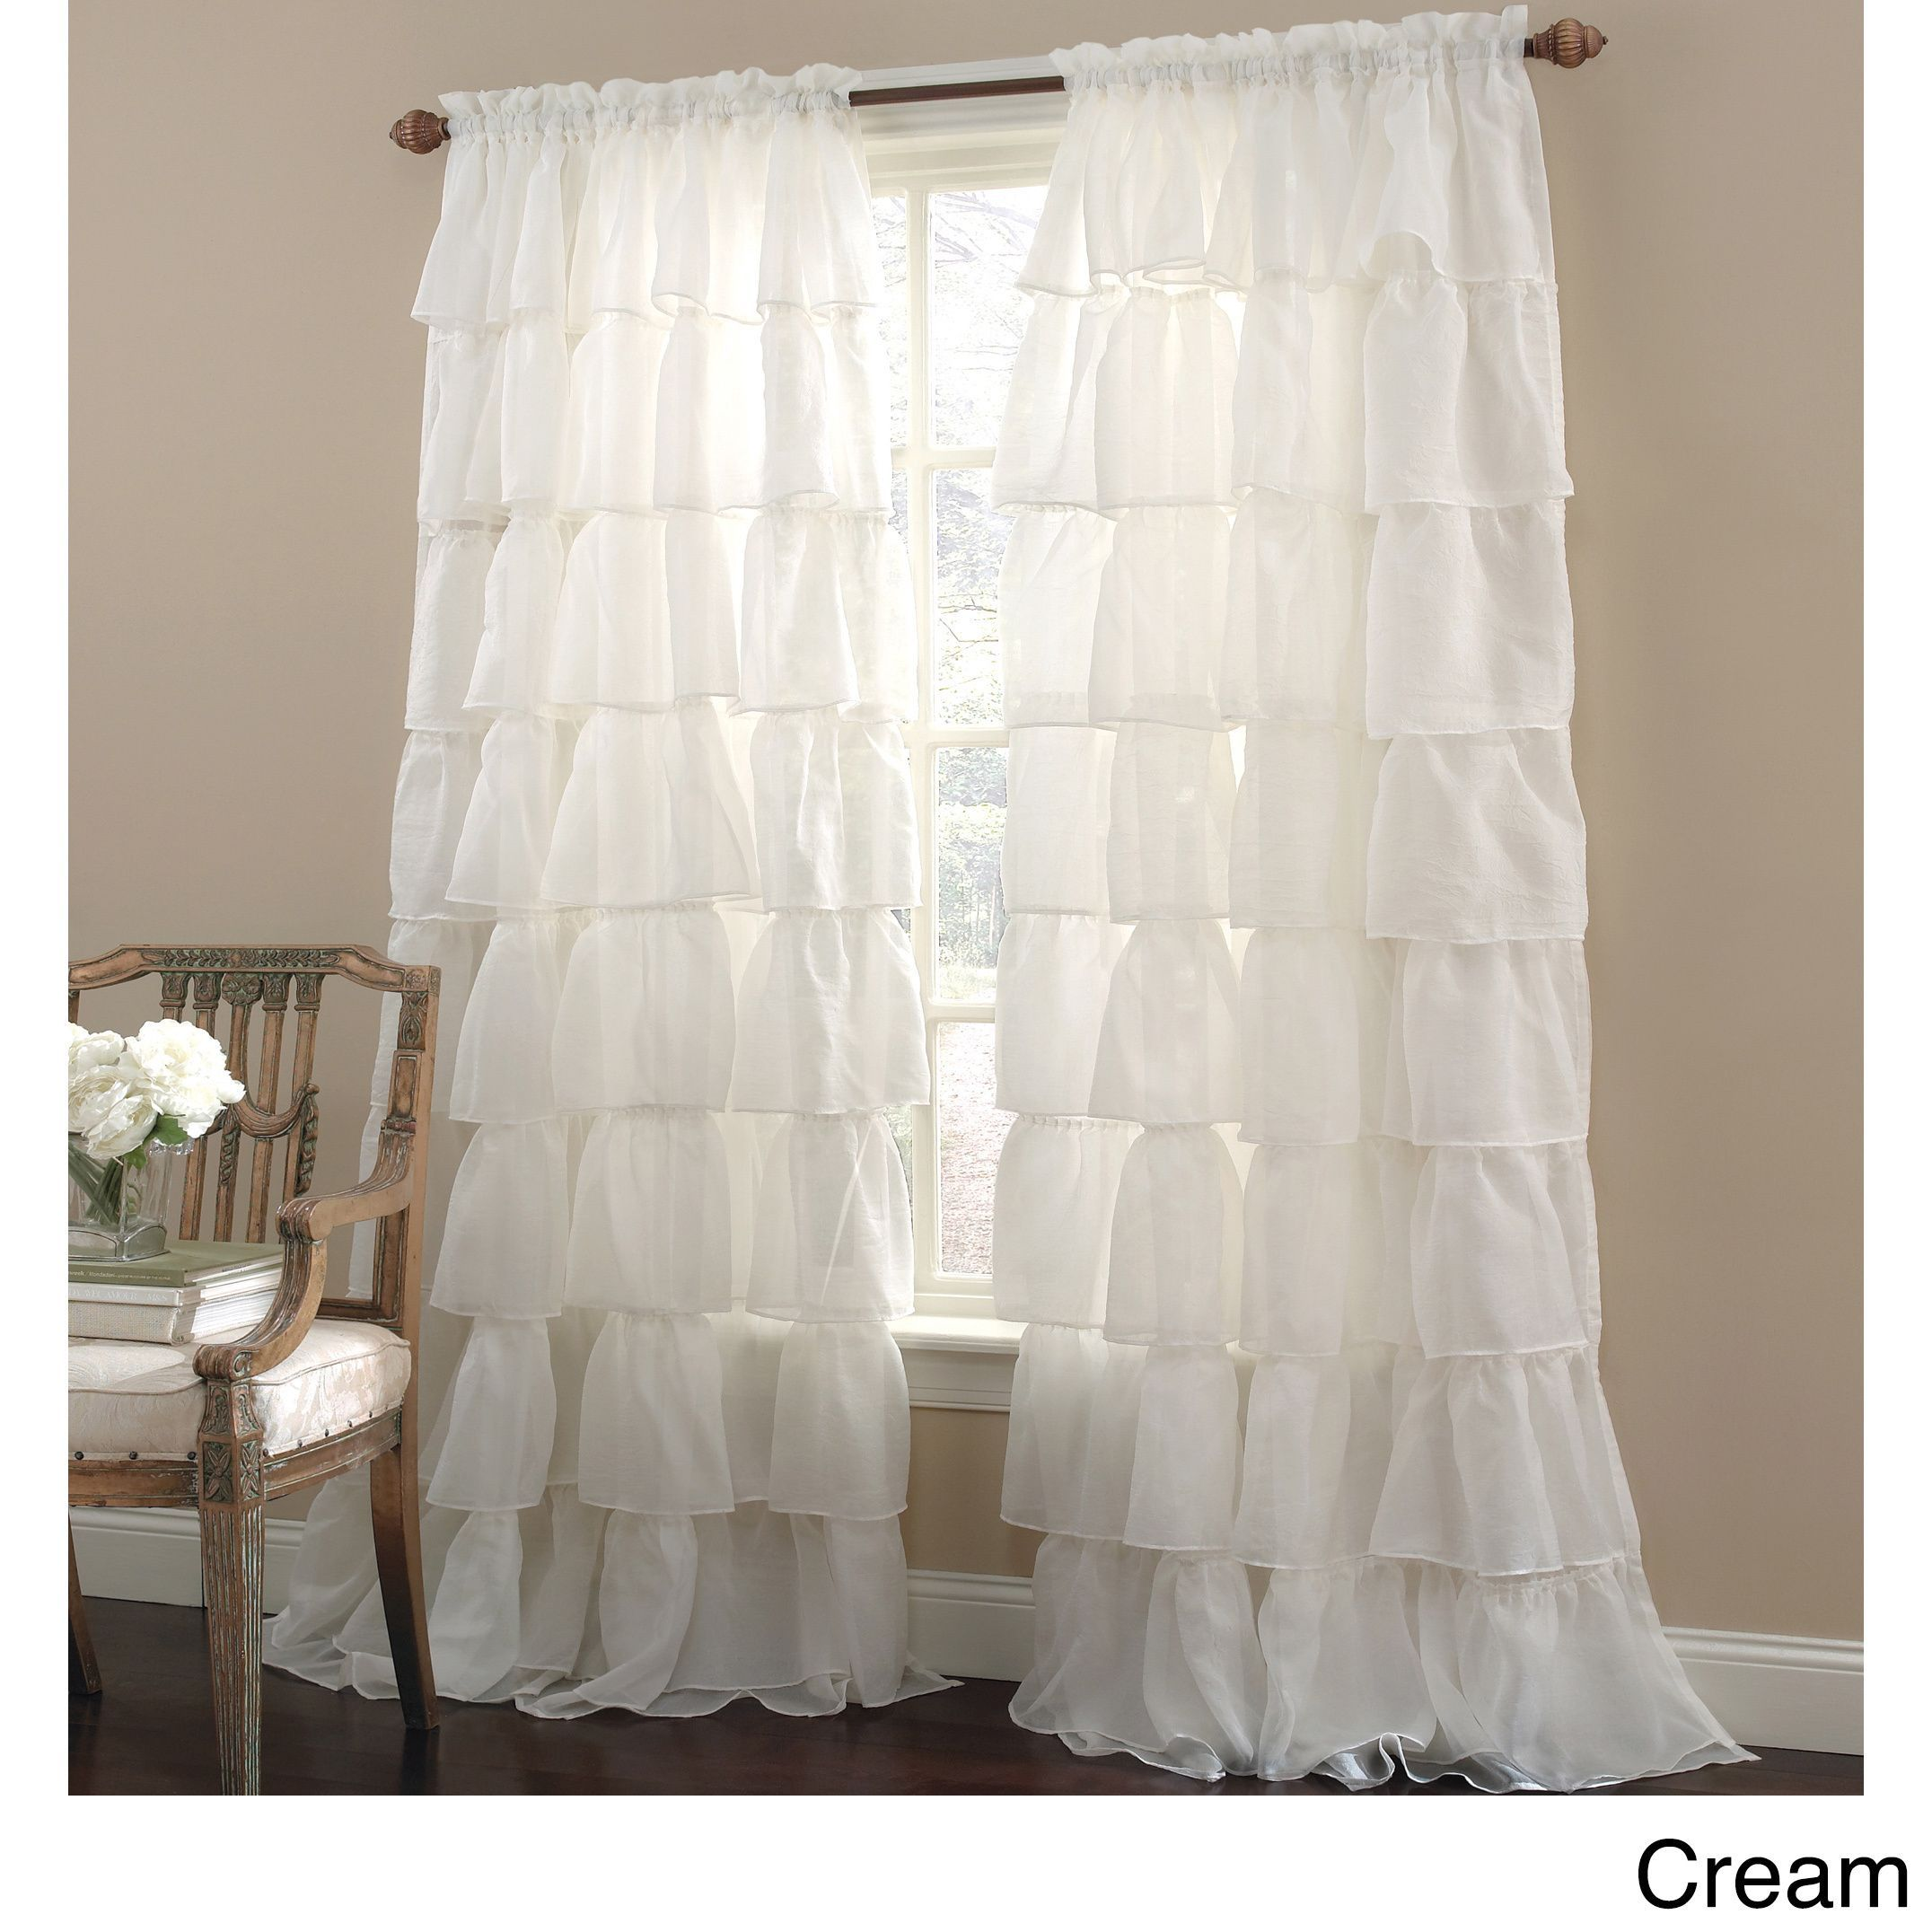 Crushed Voile Bouffant Assorted Colors 60 Inch X 84 Inch Window